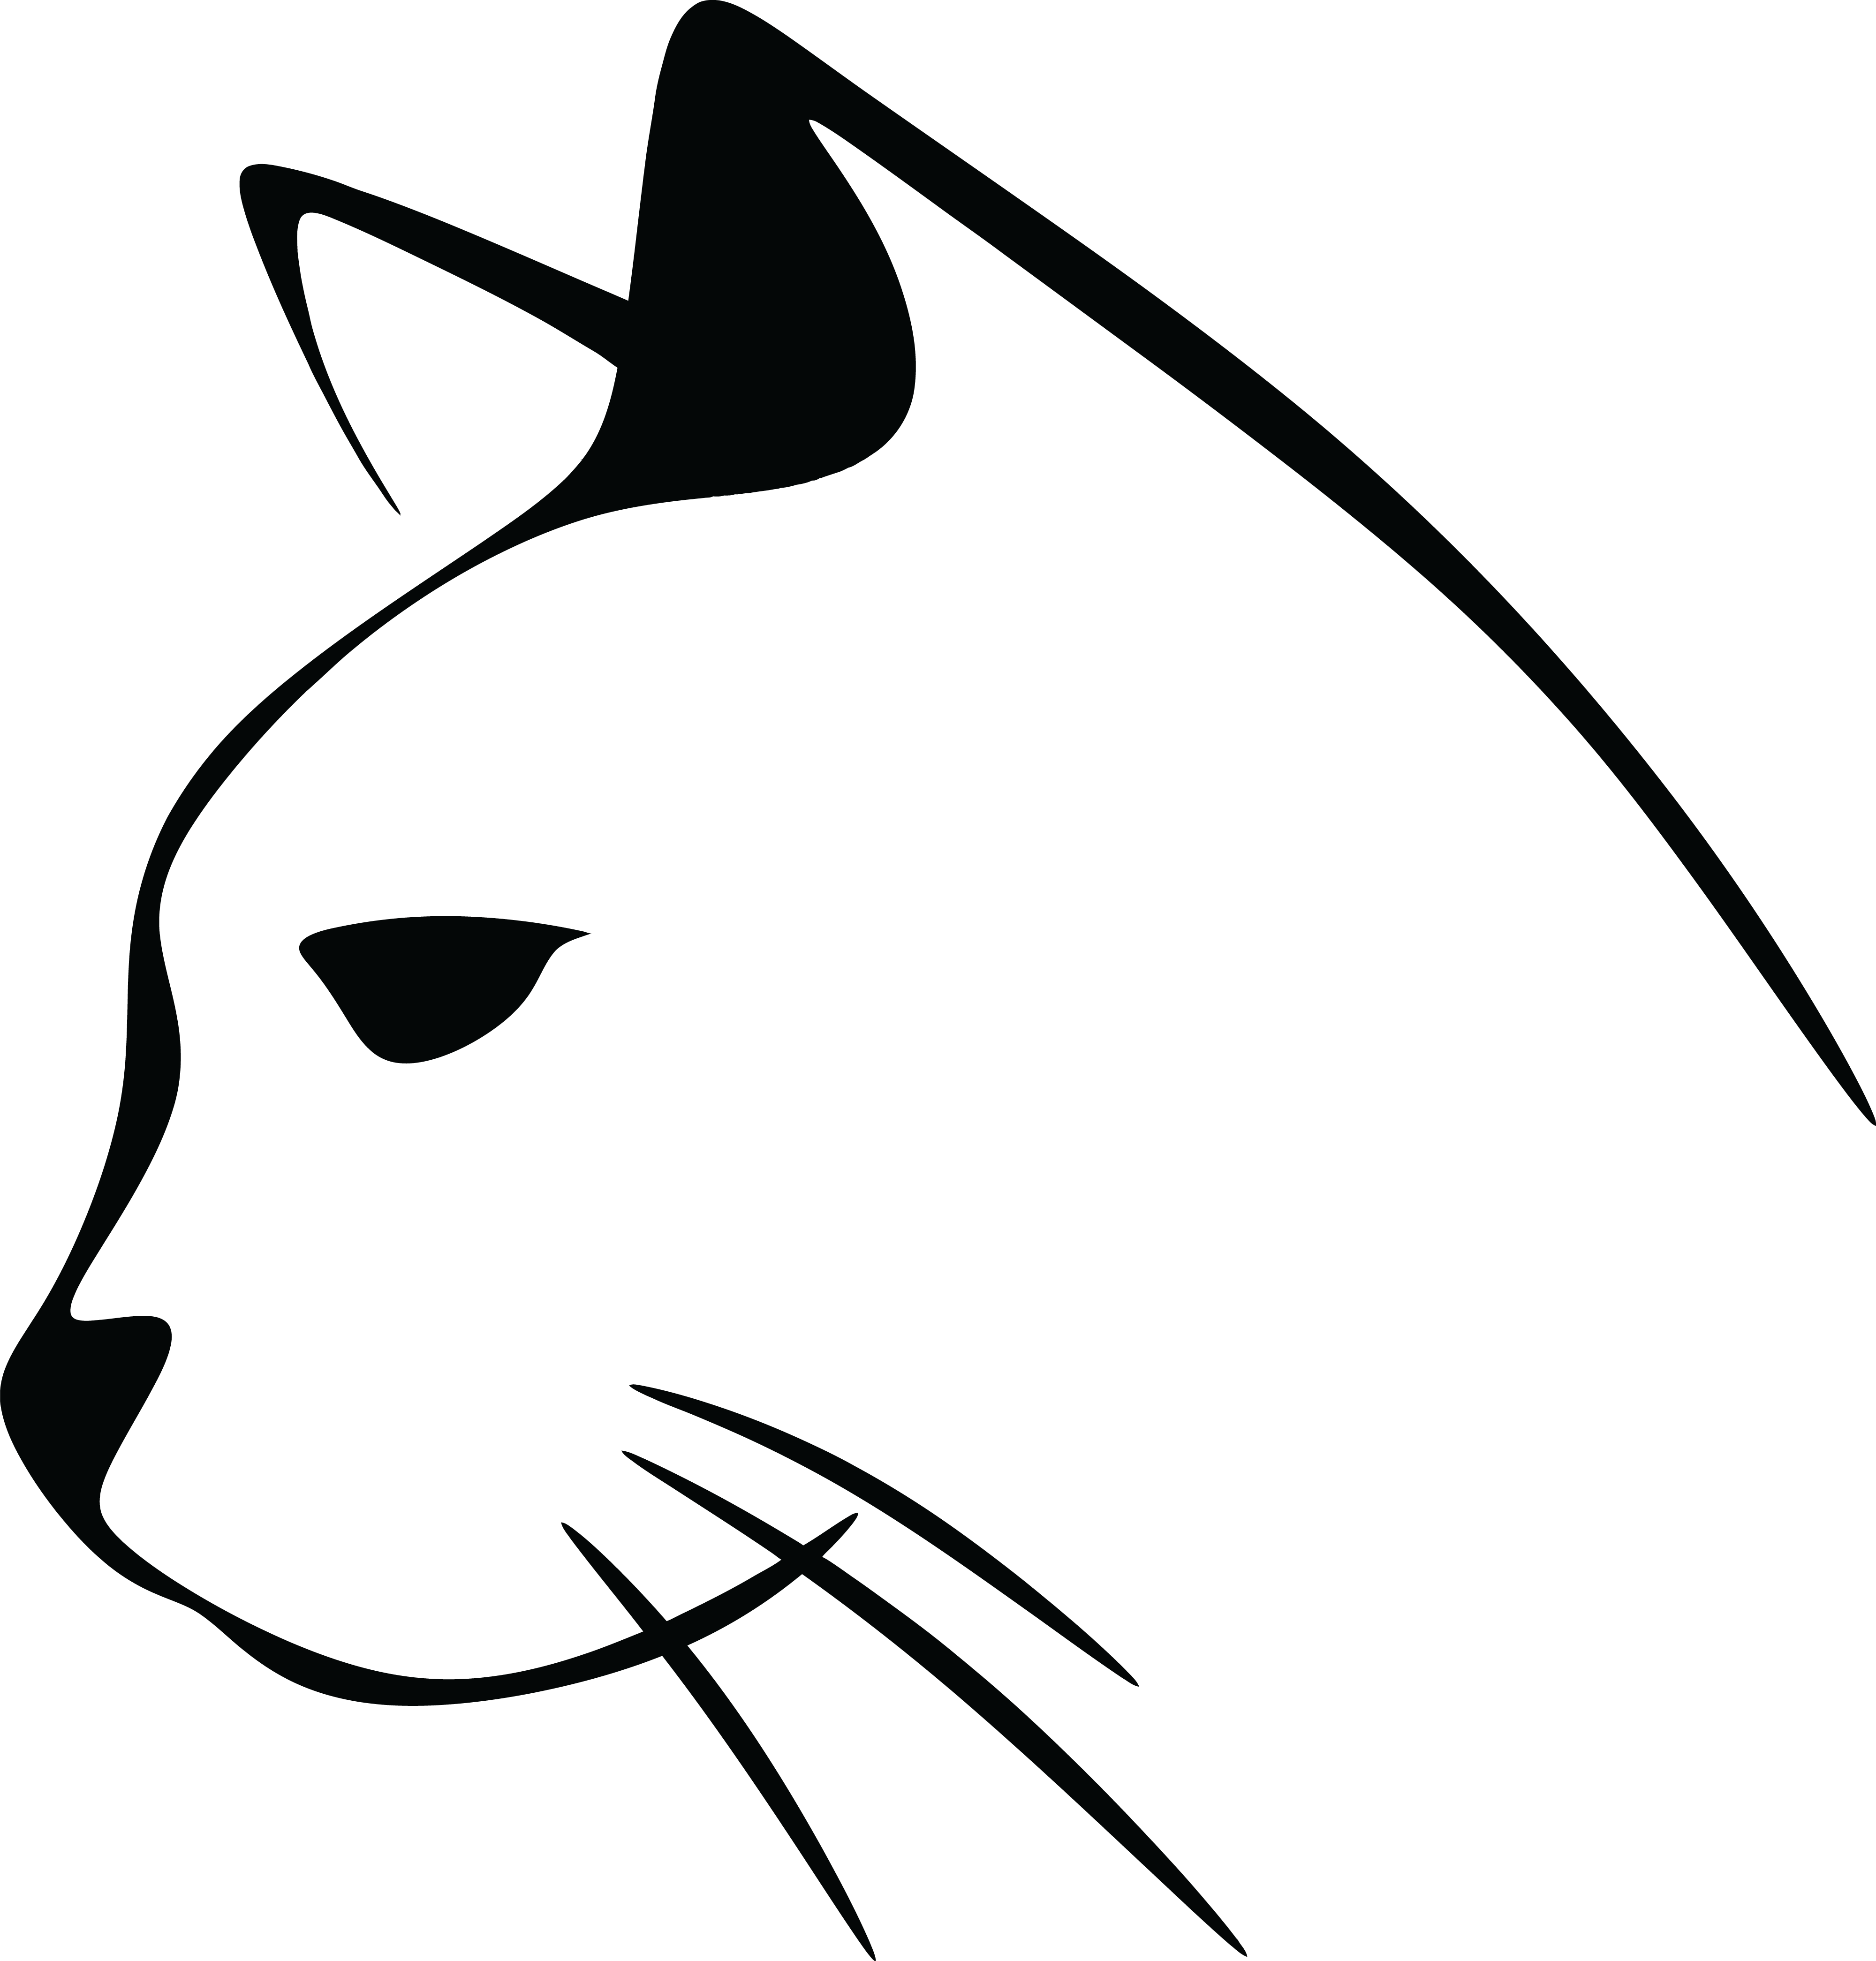 free clipart of a black and white cat head free nativity scene clipart images free animated nativity scene clipart